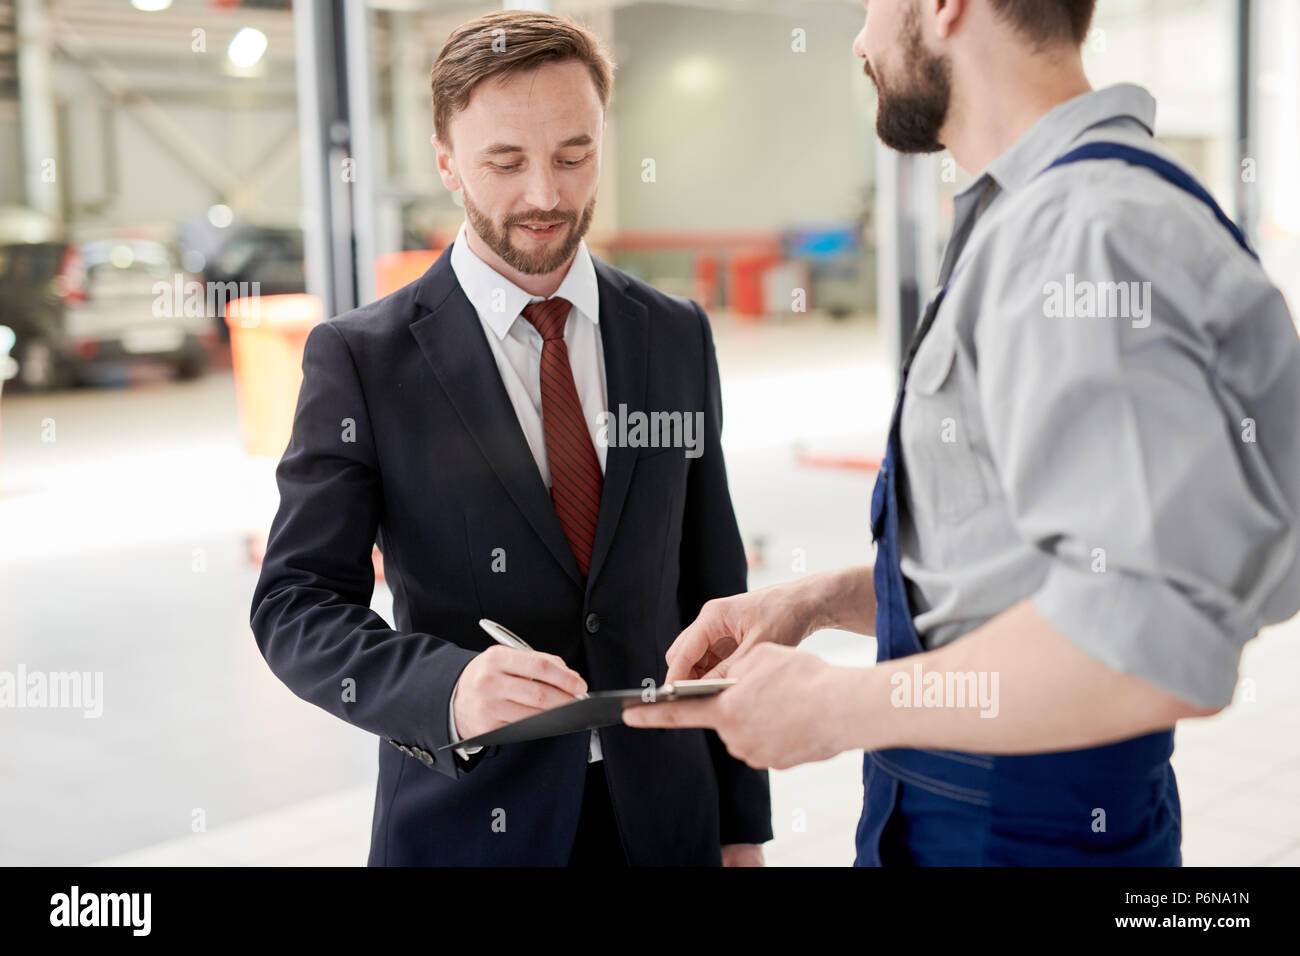 Businessman Signing Car Service Contract